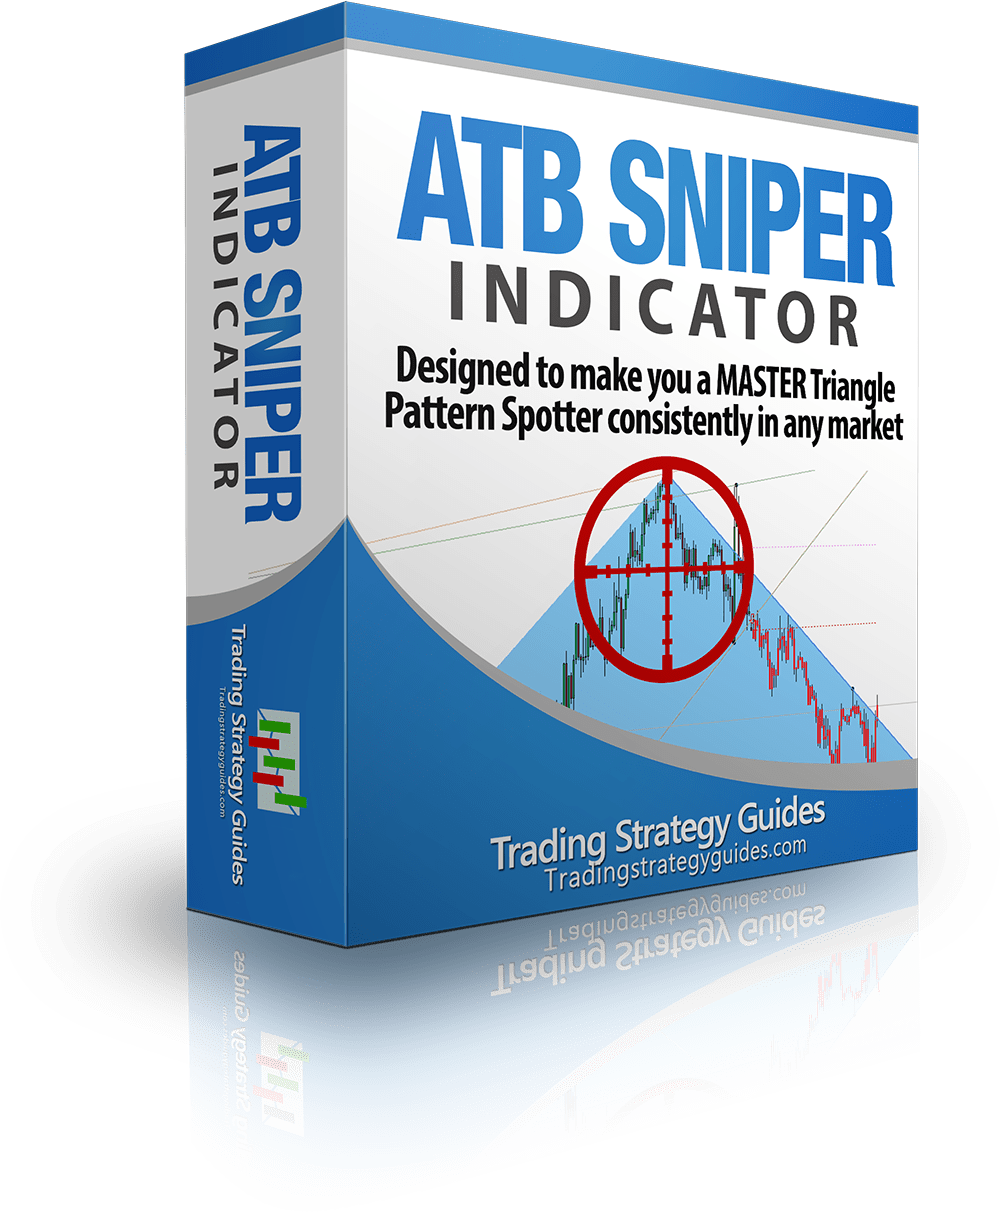 atb sniper indicator trading strategy guide